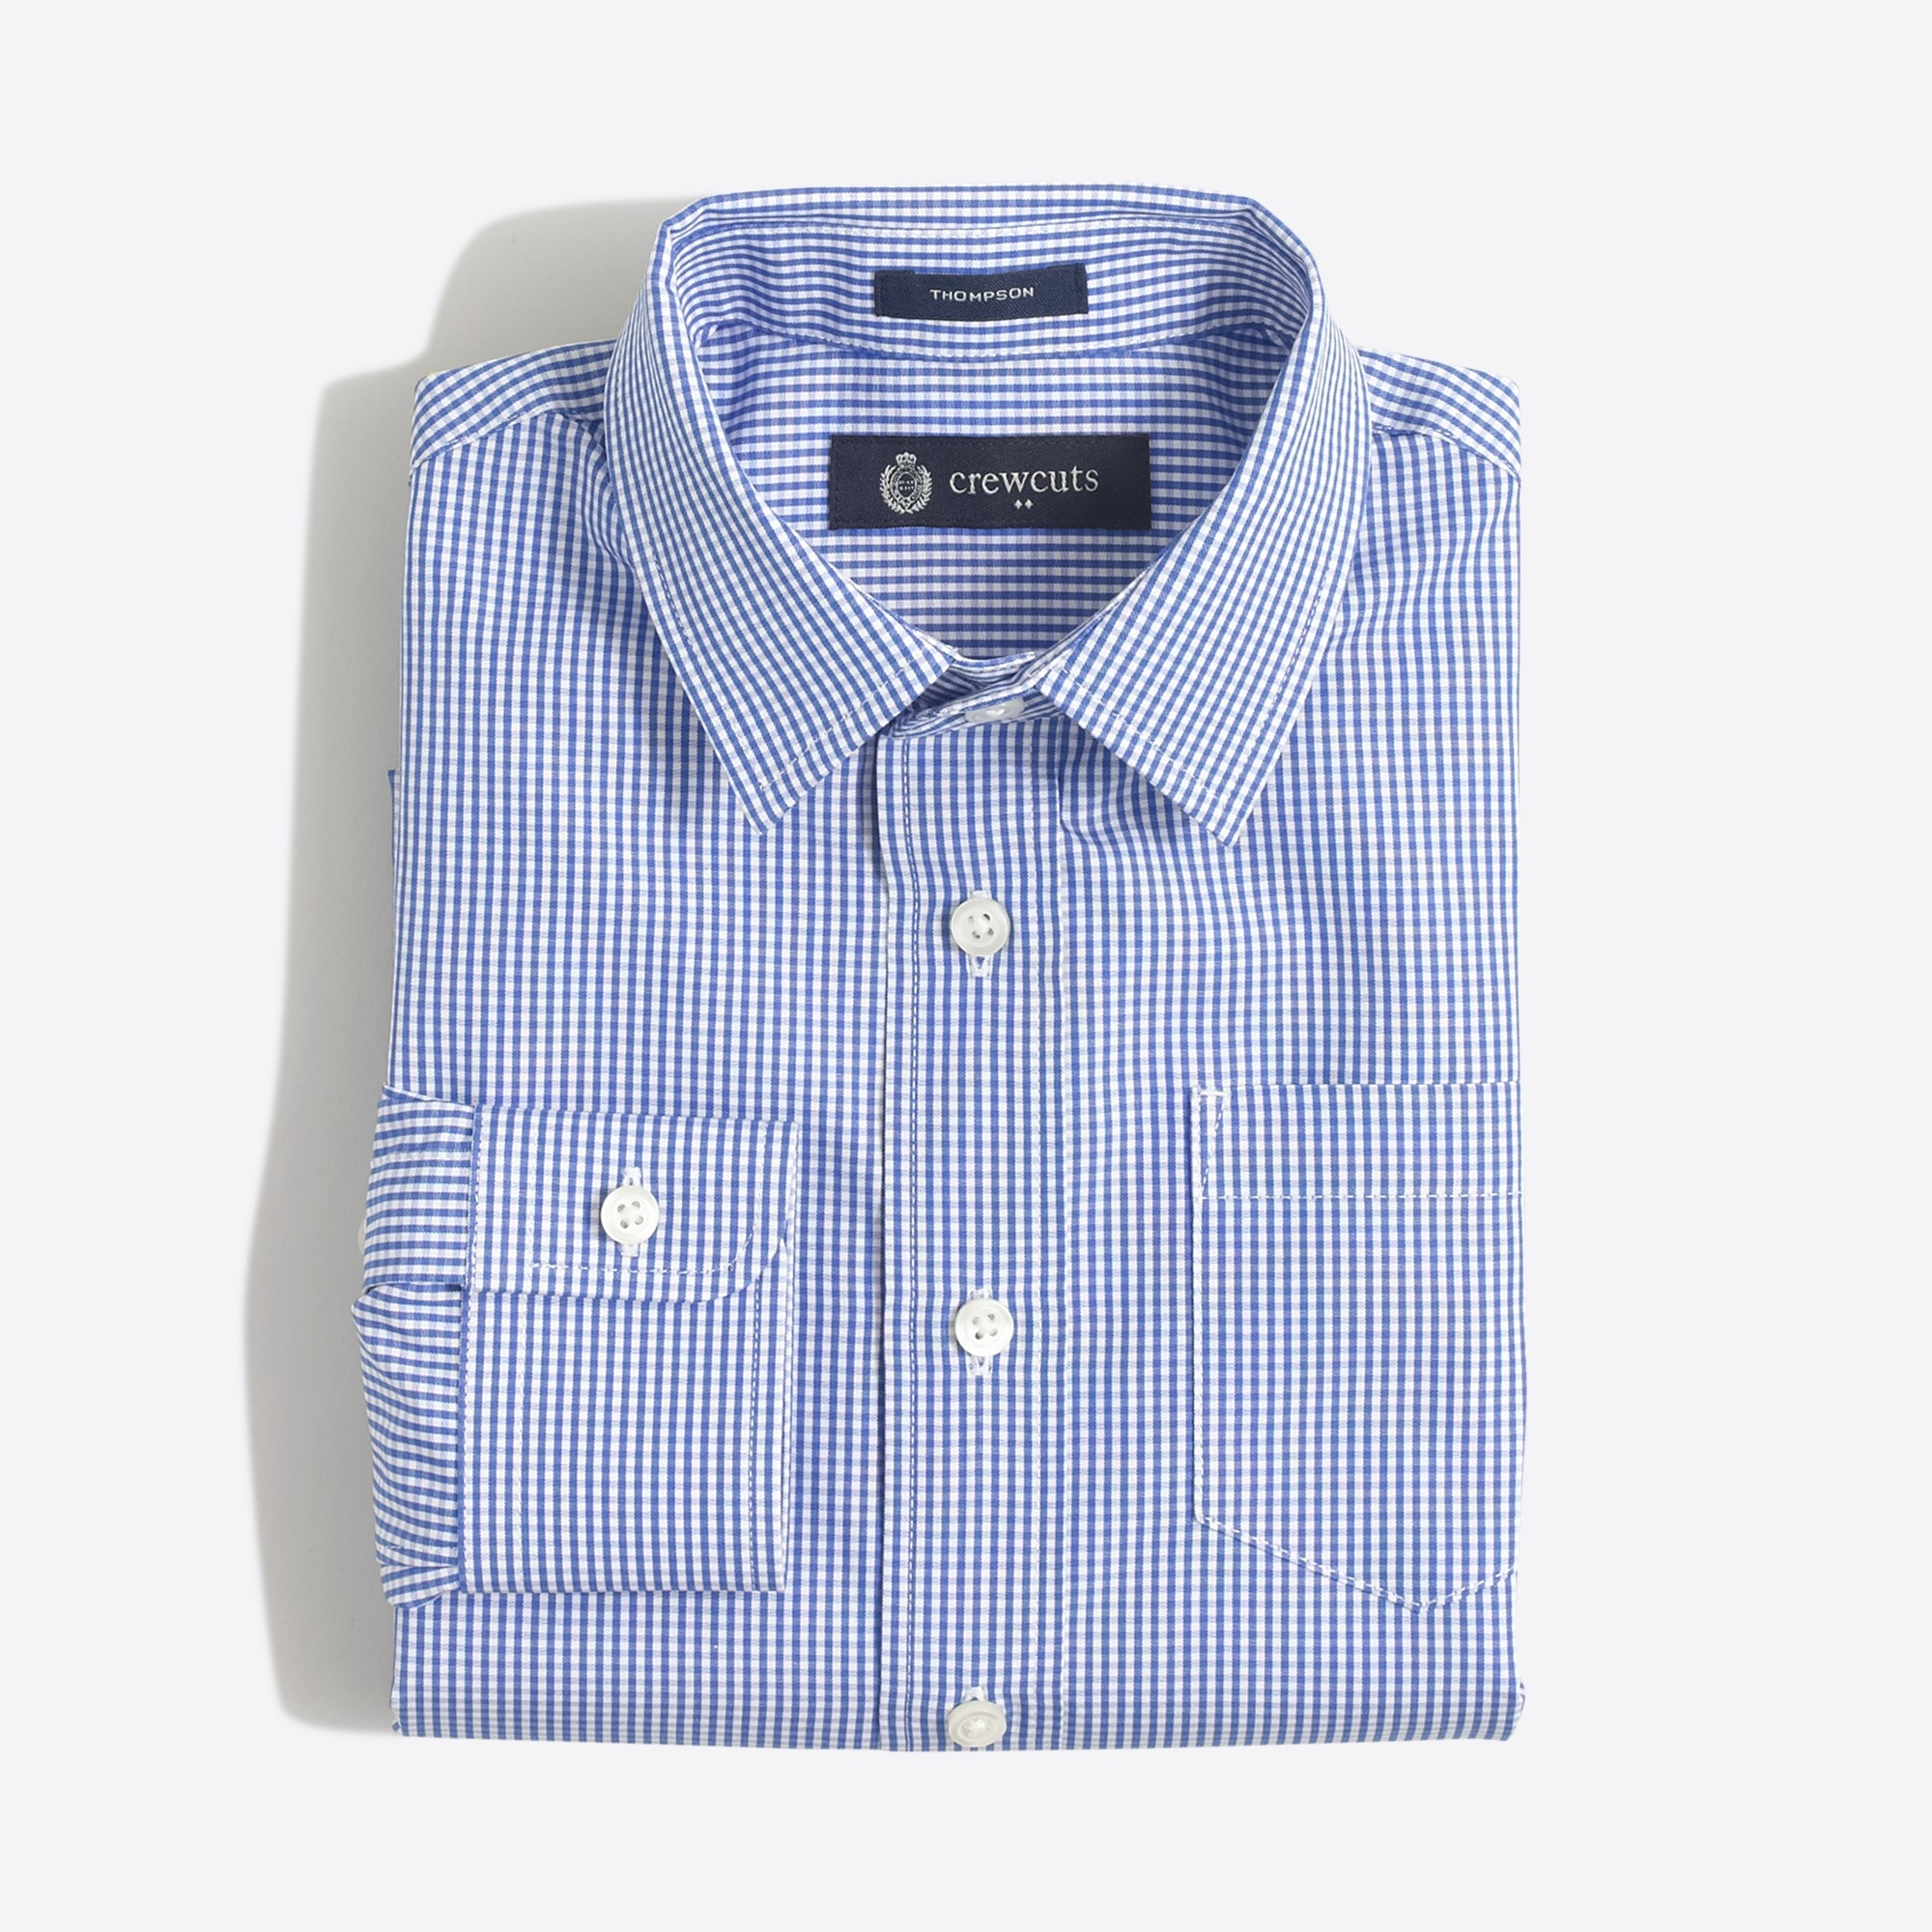 factory boys Boys' patterned Thompson point-collar dress shirt